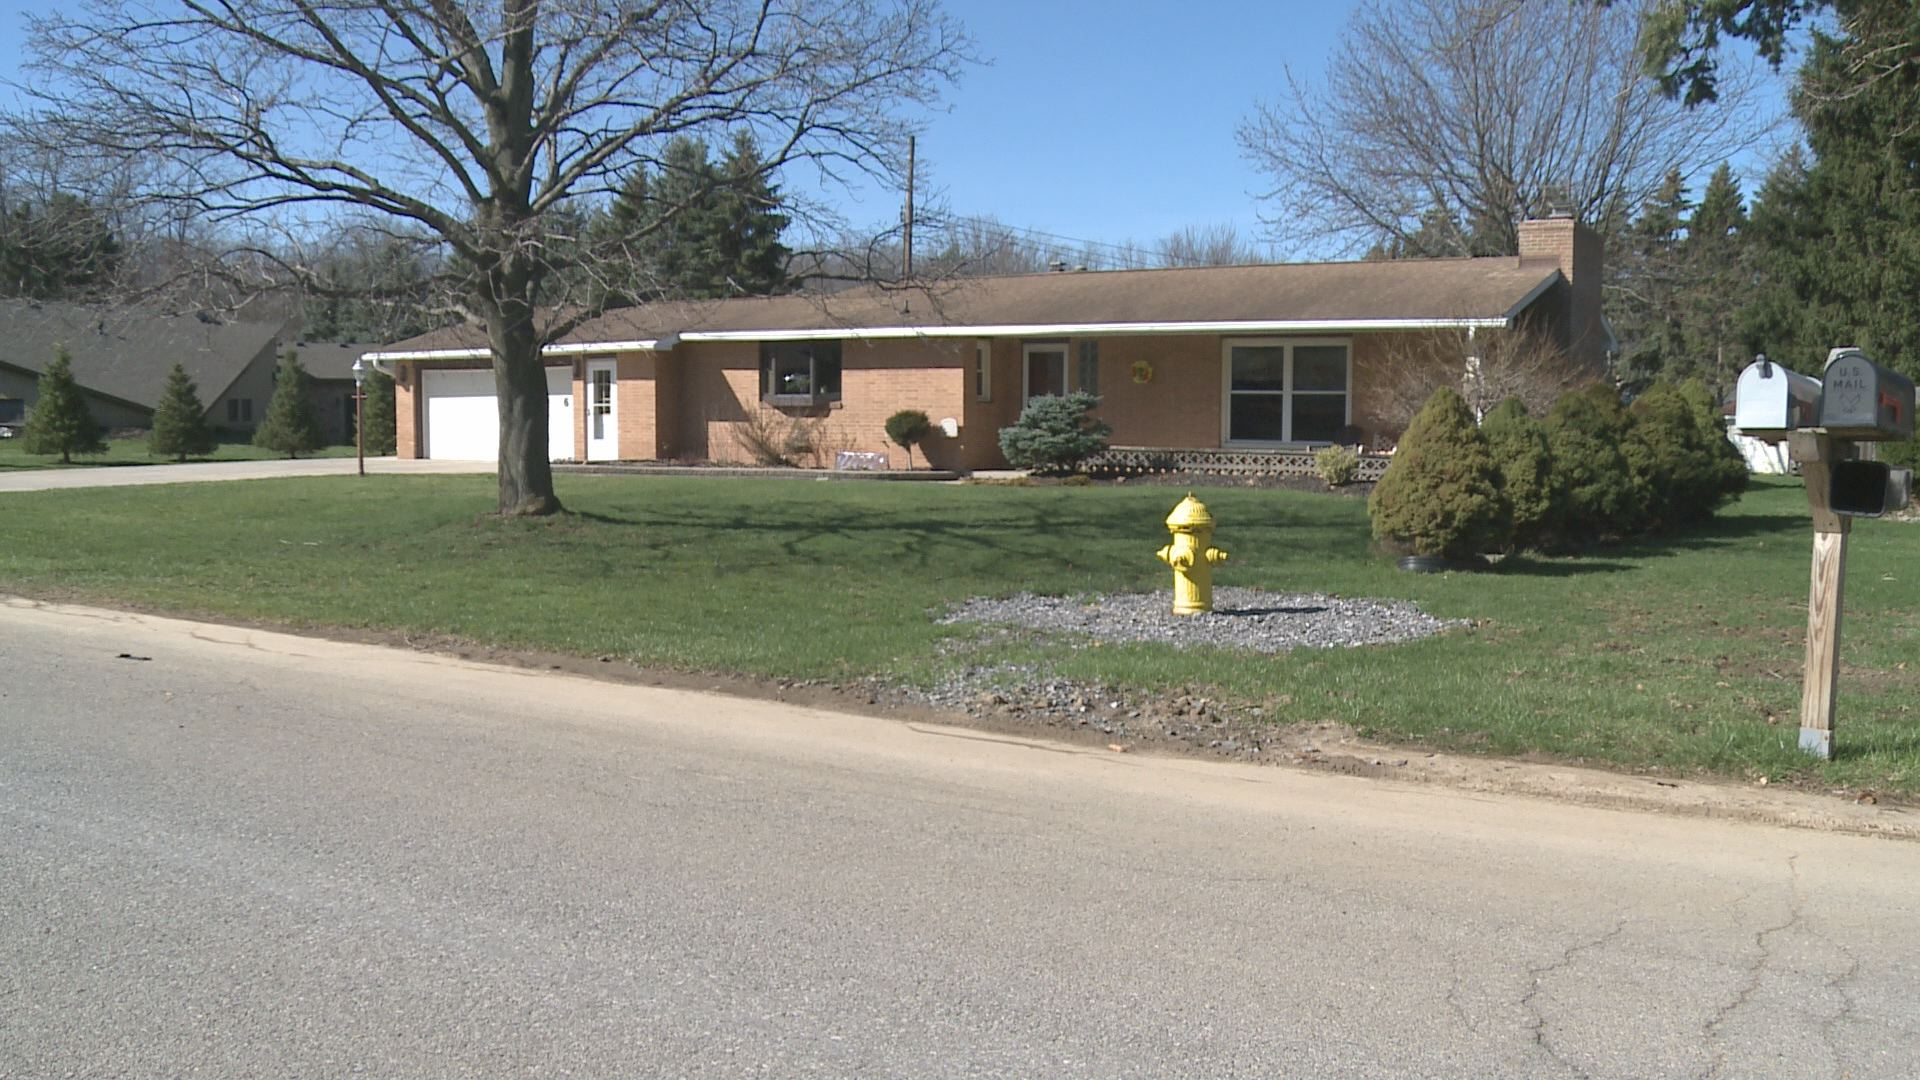 Murder Suicide In Orchard Park